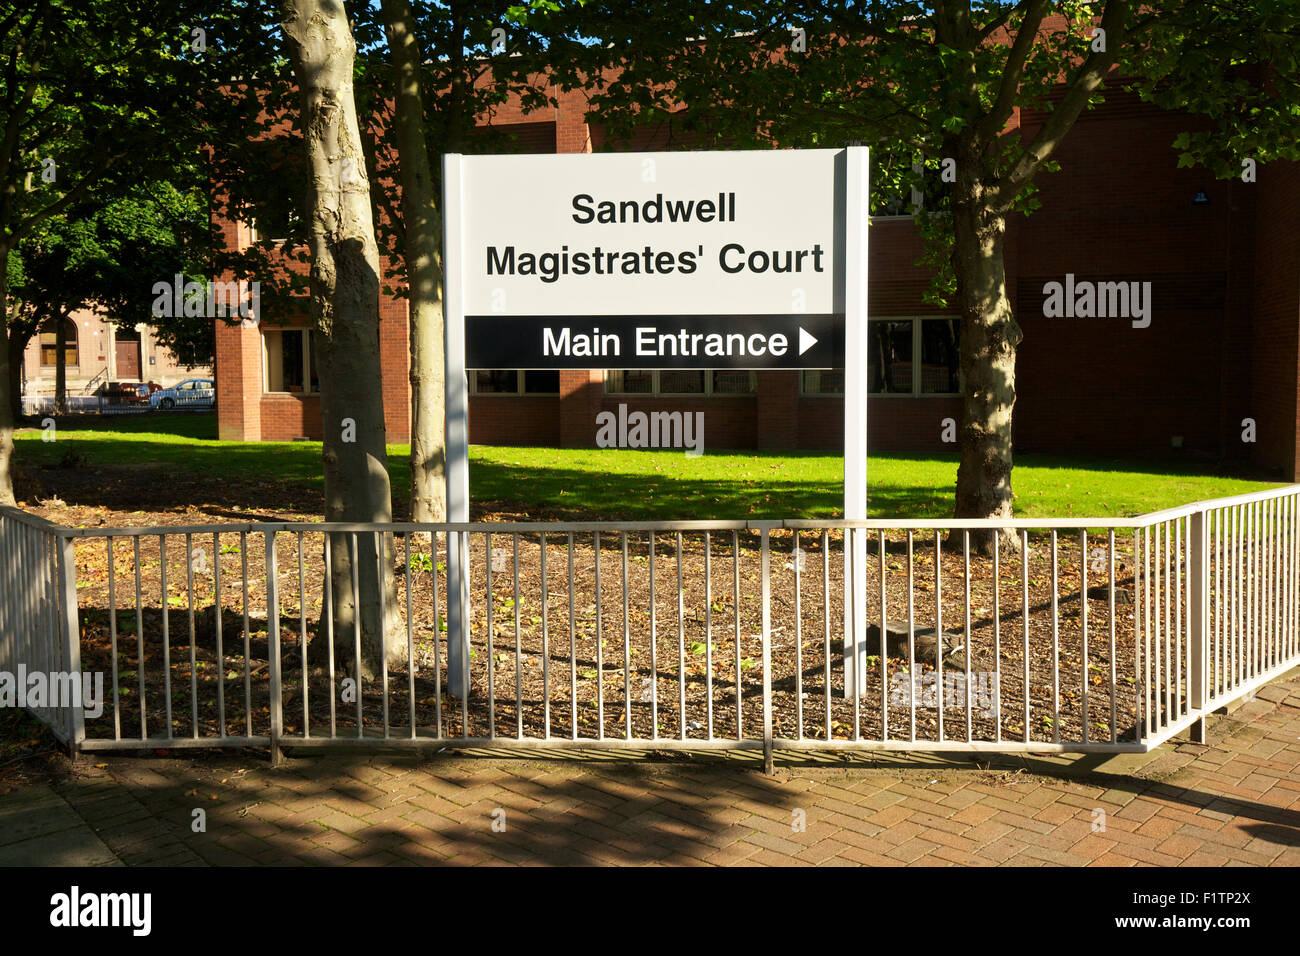 Sandwell Magistrates Court Oldbury West Midlands England UK - Stock Image